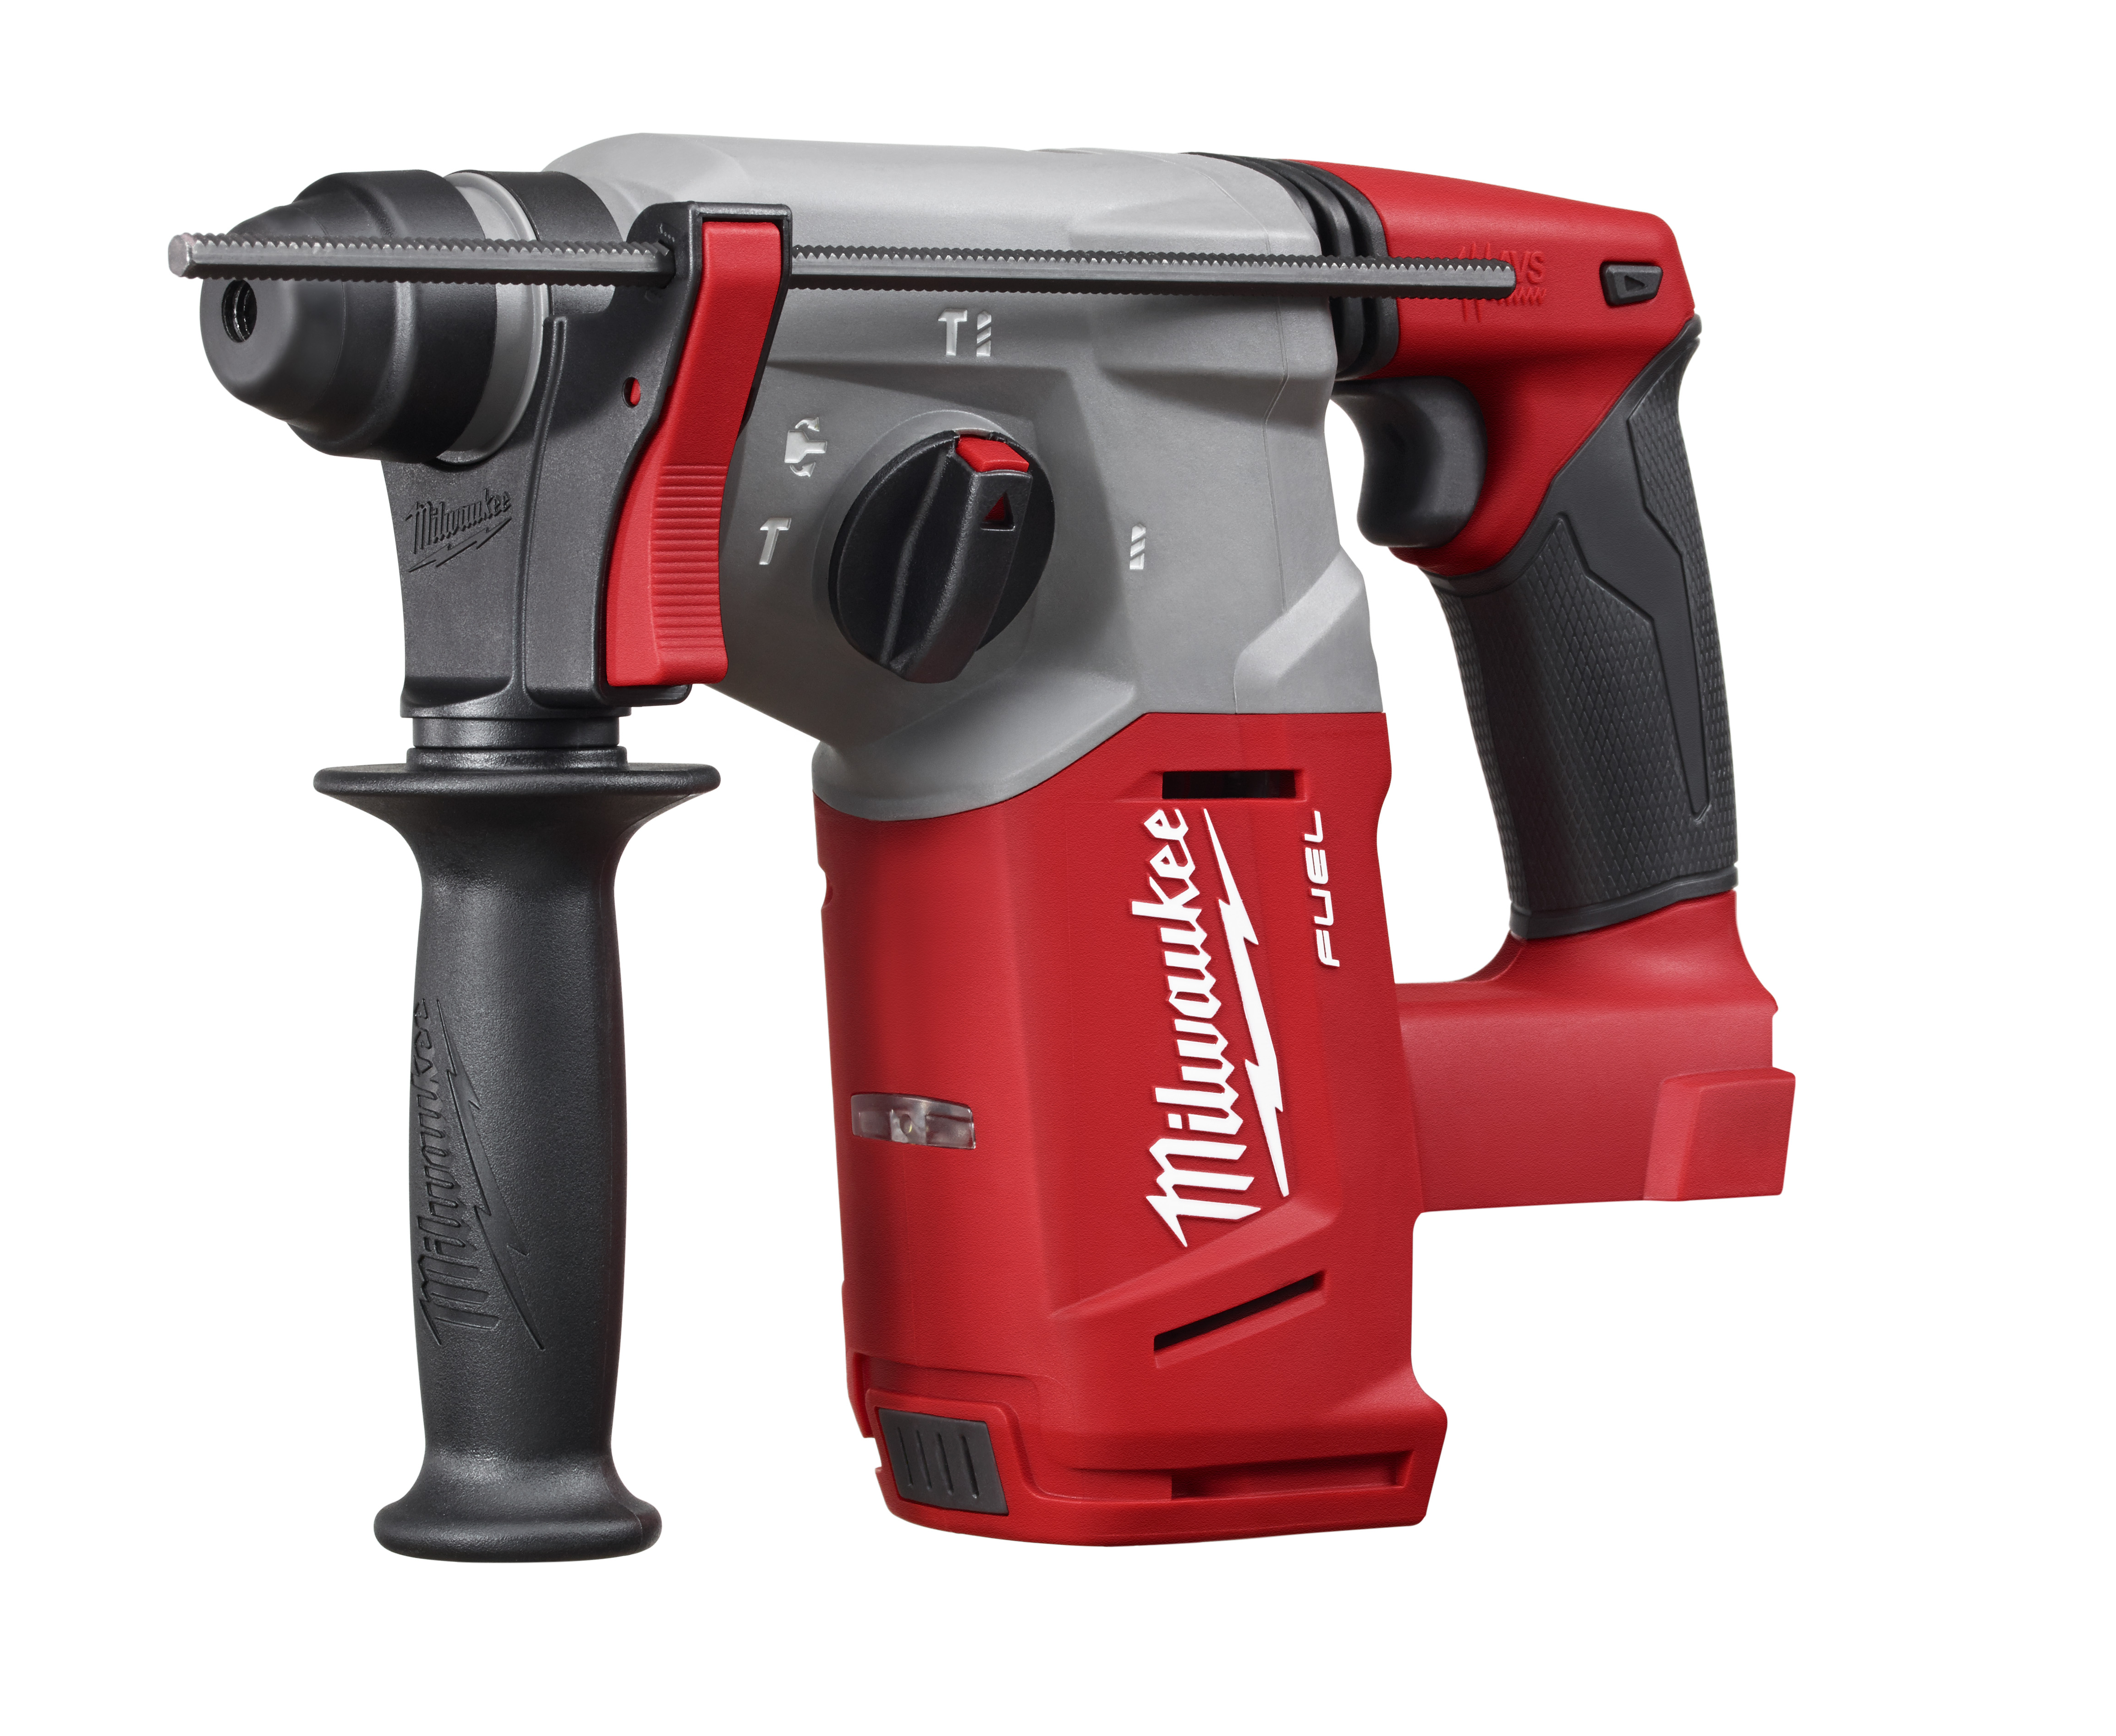 Milwaukee® M18™ FUEL™ 2712-20 Cordless Rotary Hammer, 1 in Keyless/SDS Plus® Chuck, 18 VDC, 1400 rpm No-Load, Lithium-Ion Battery